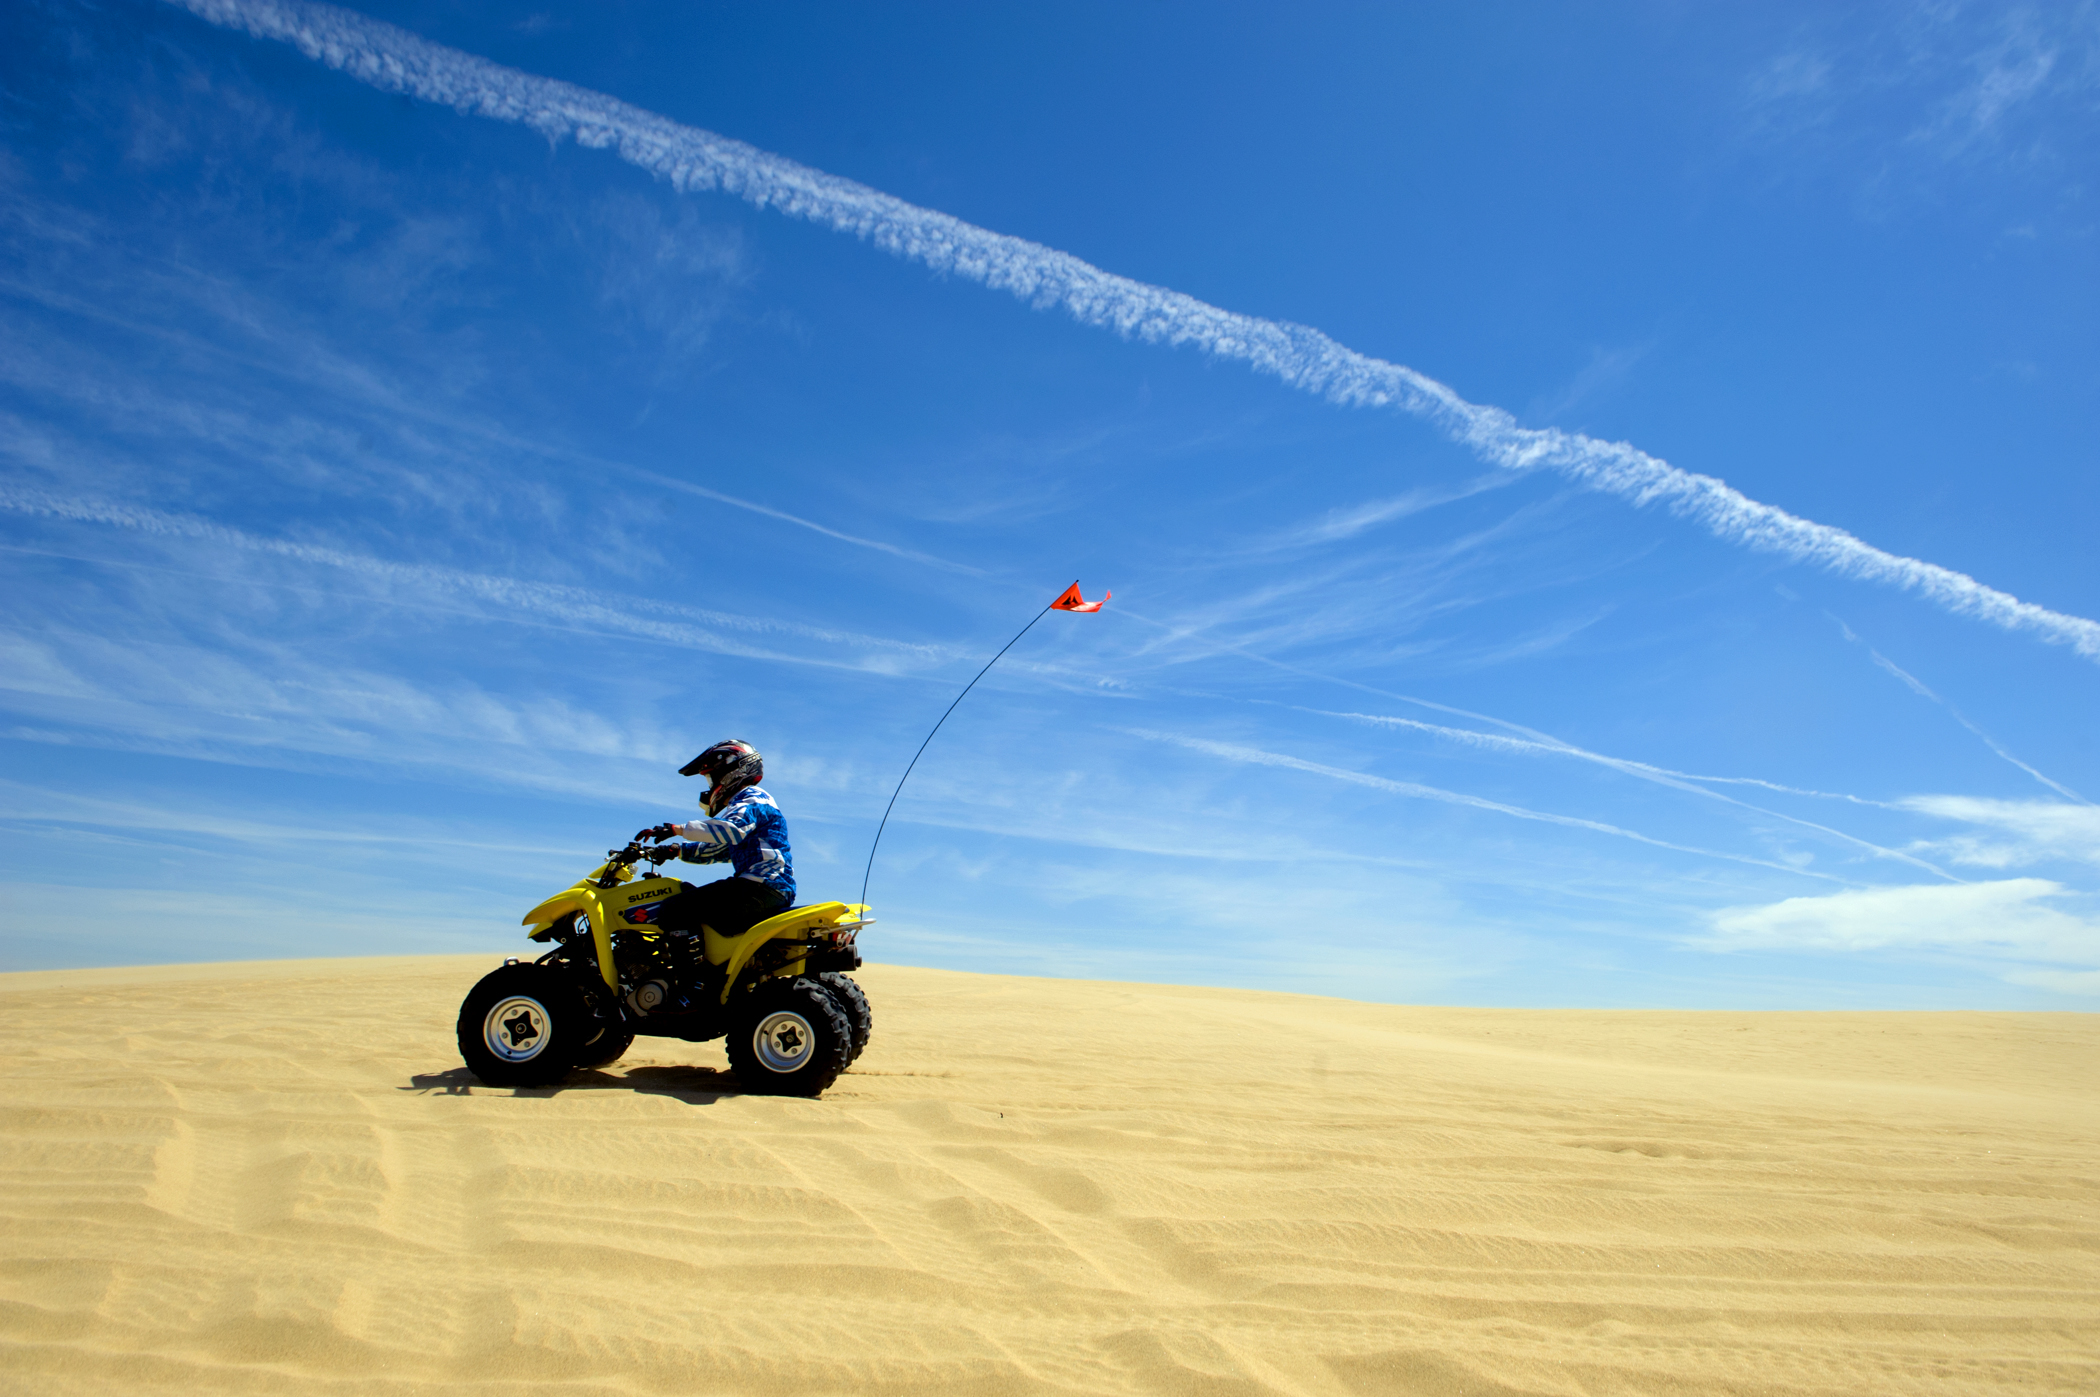 ATV riding on a dune